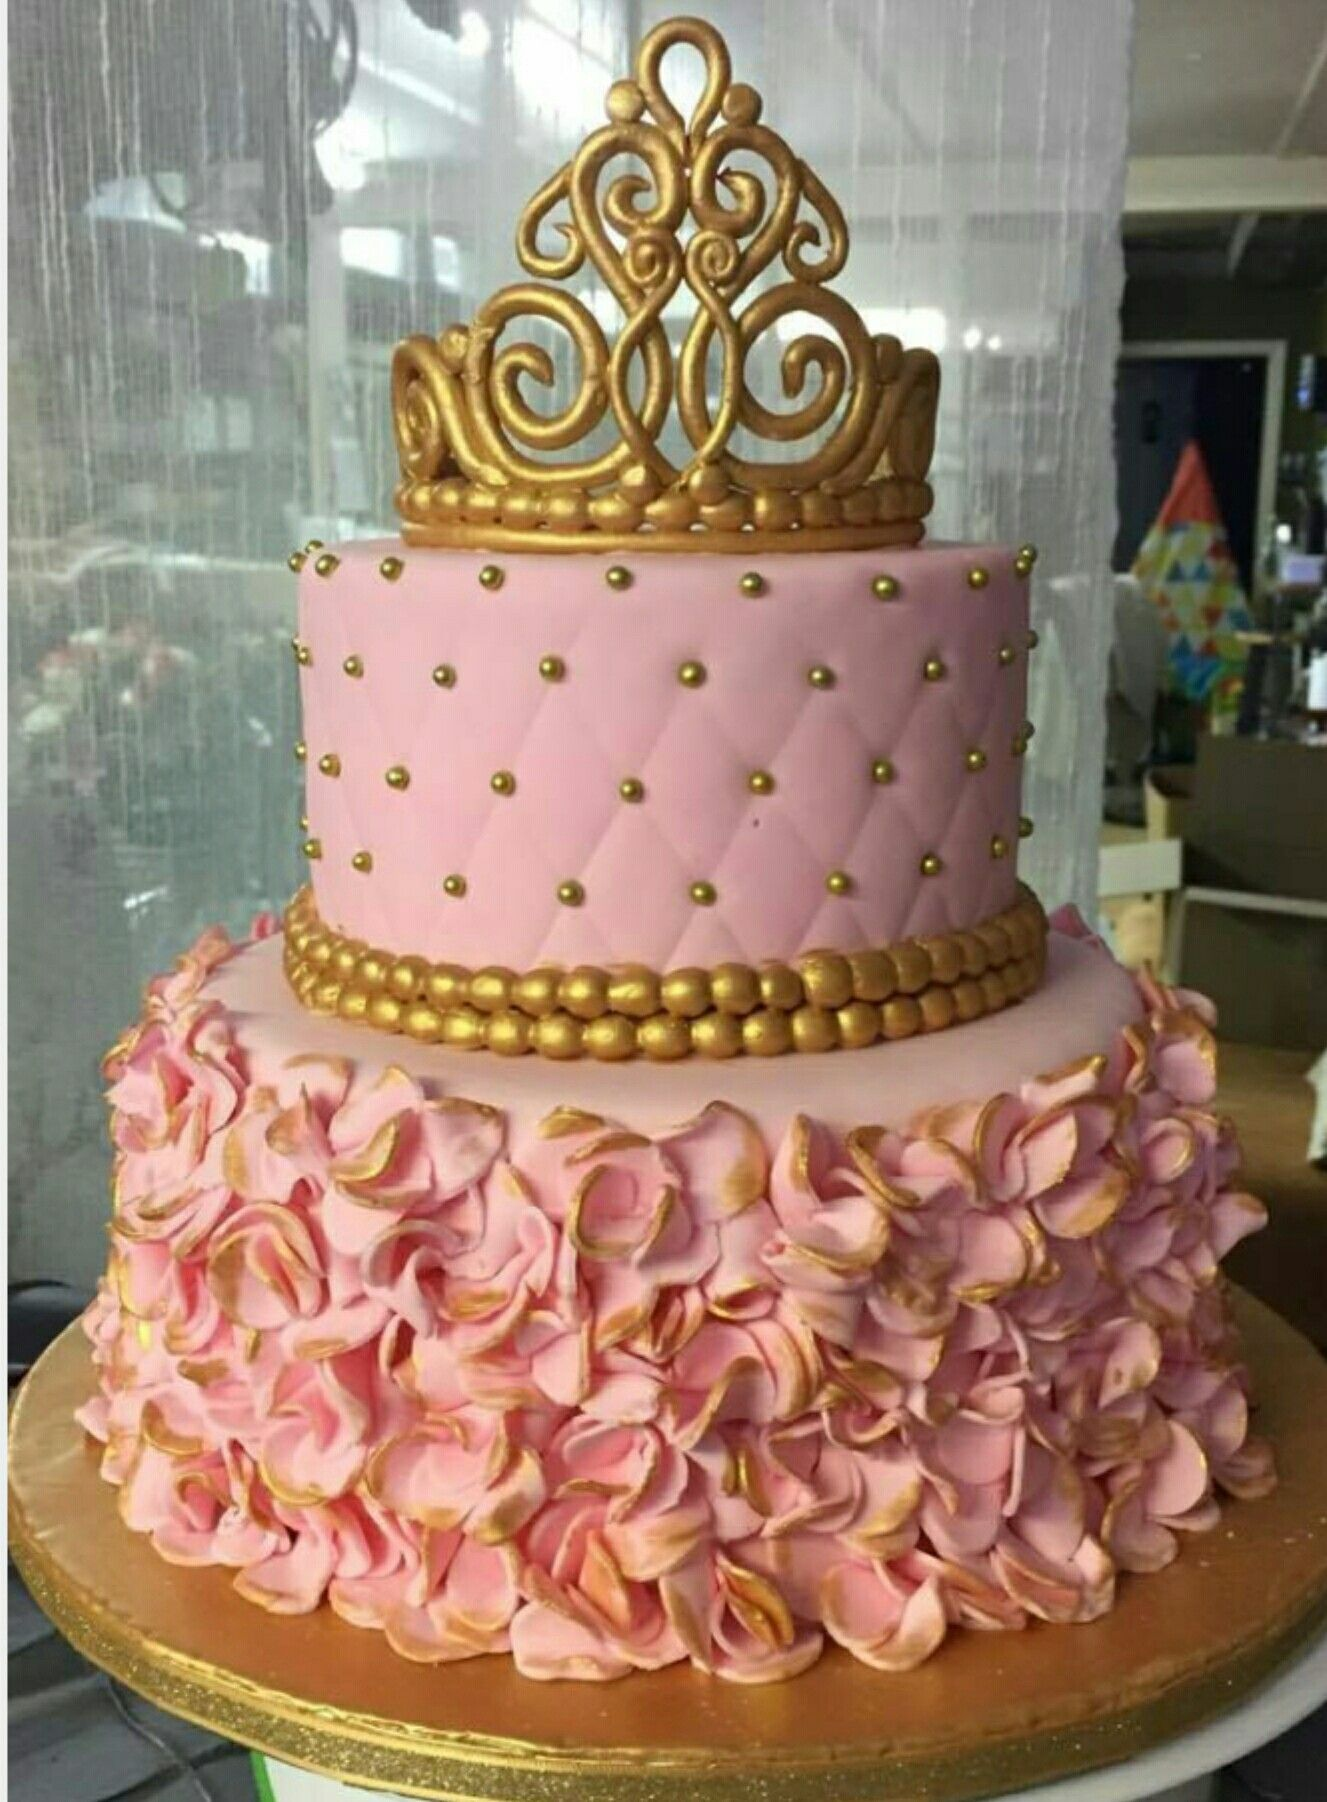 Pin By Tally Lavonne On Tiara 15th Pinterest Birthdays Babies